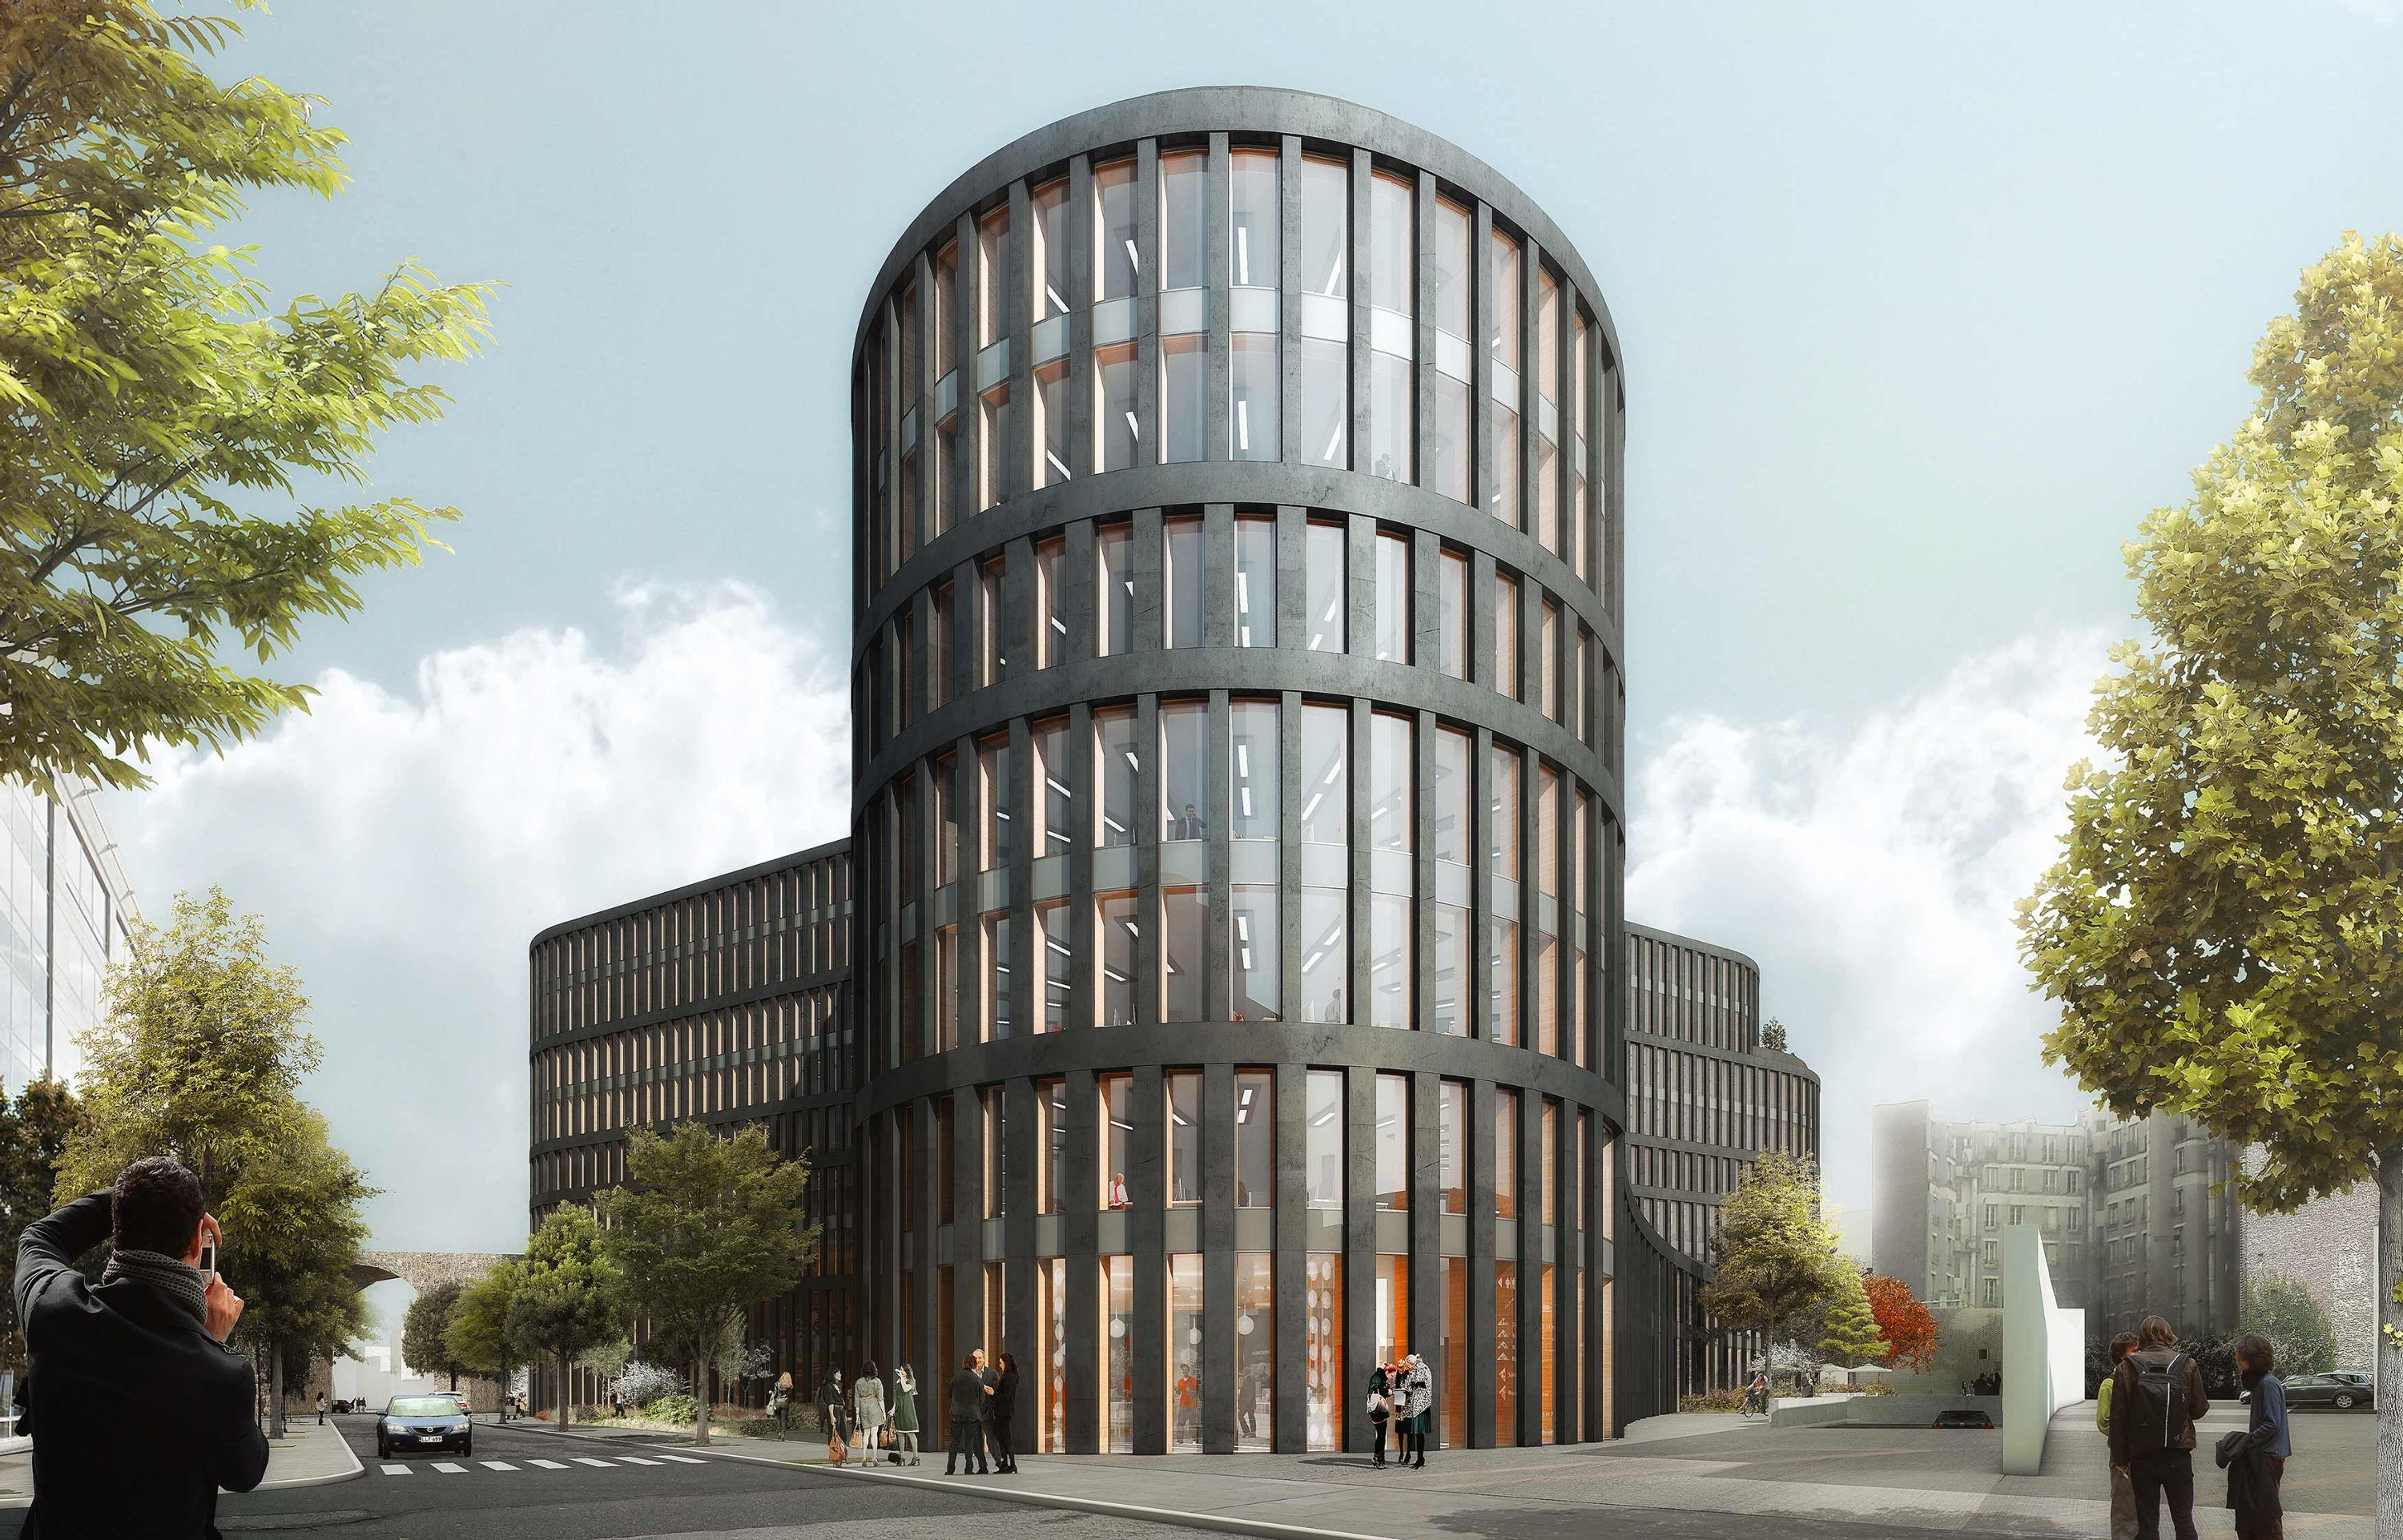 be issy tripode issy les moulineaux pca stream bureaux innovation bioclimatisme